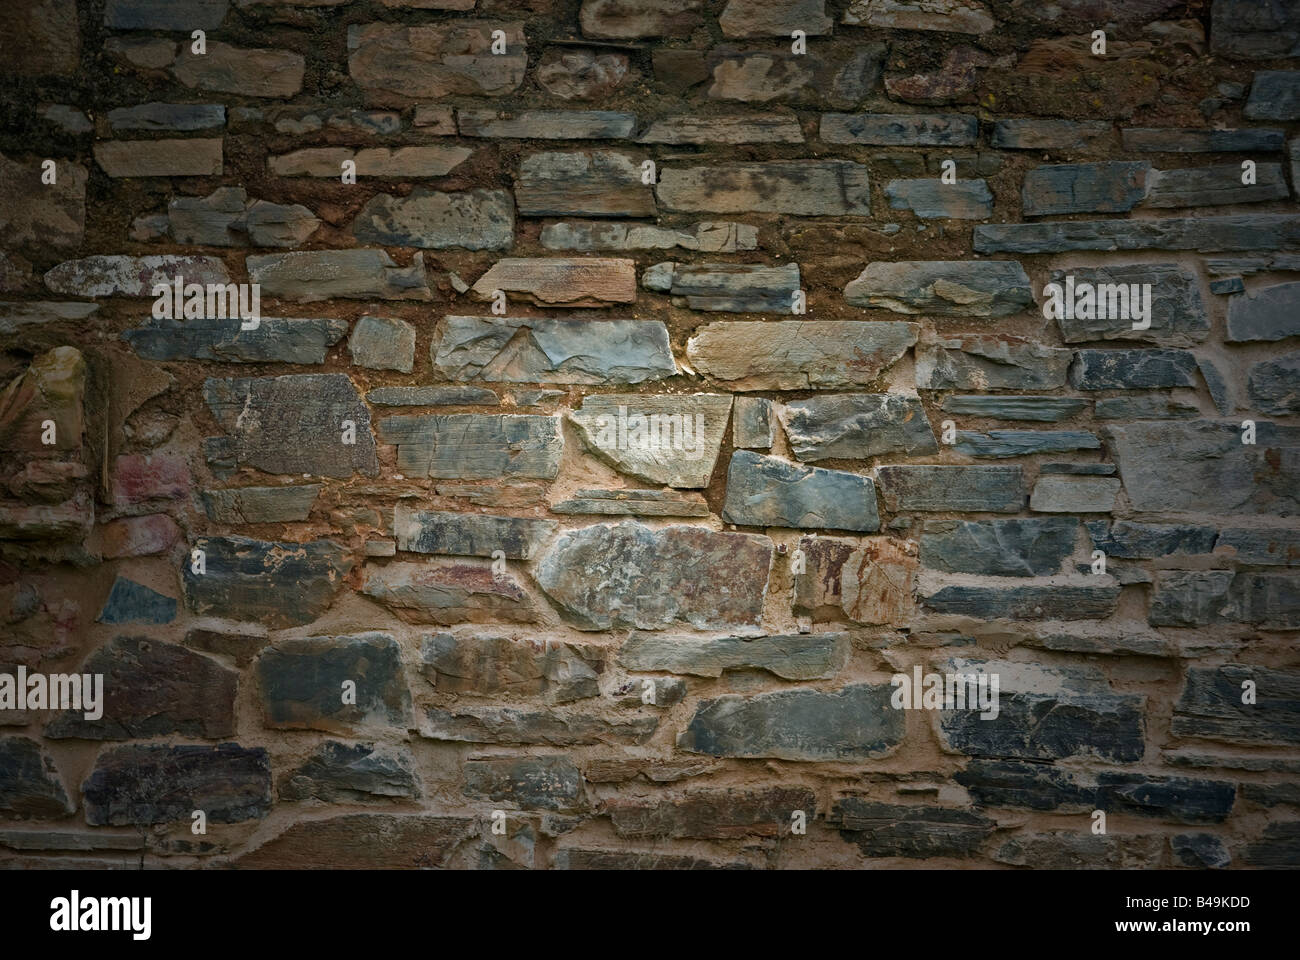 an old dirty and grungy stone wall background - Stock Image